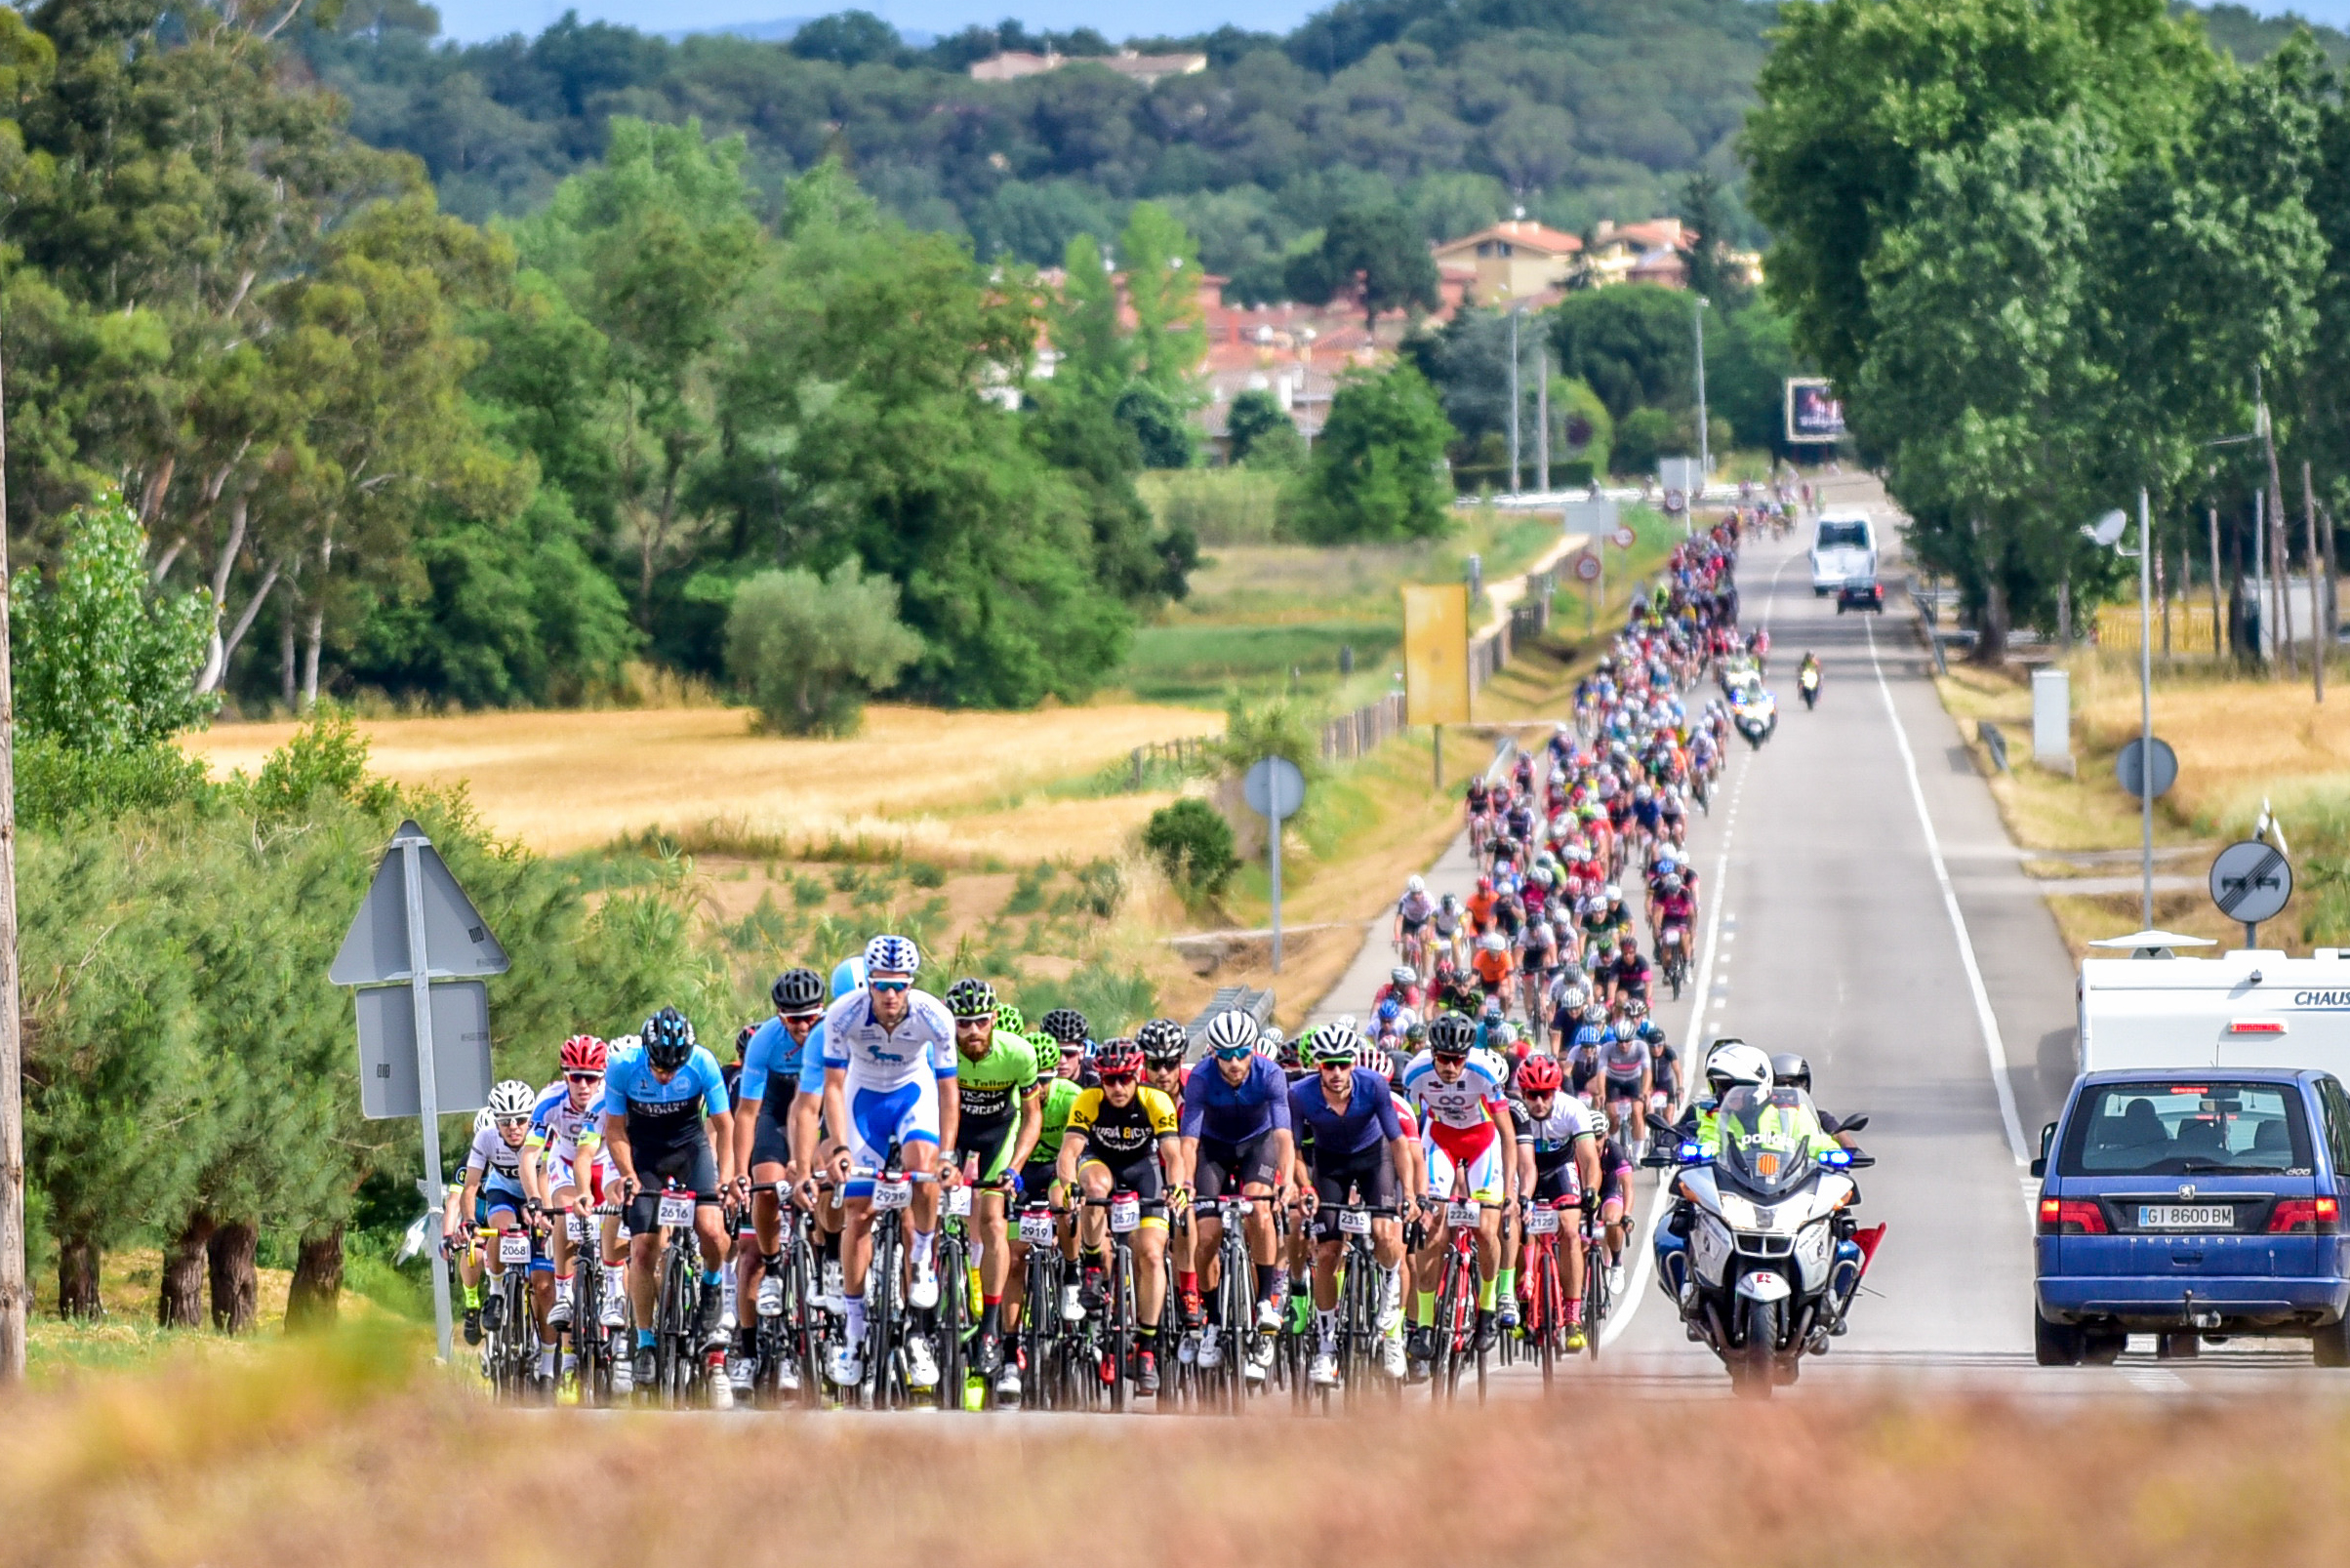 La sea otter europe promotionne le cyclisme � G�rone et en Costa Brava.